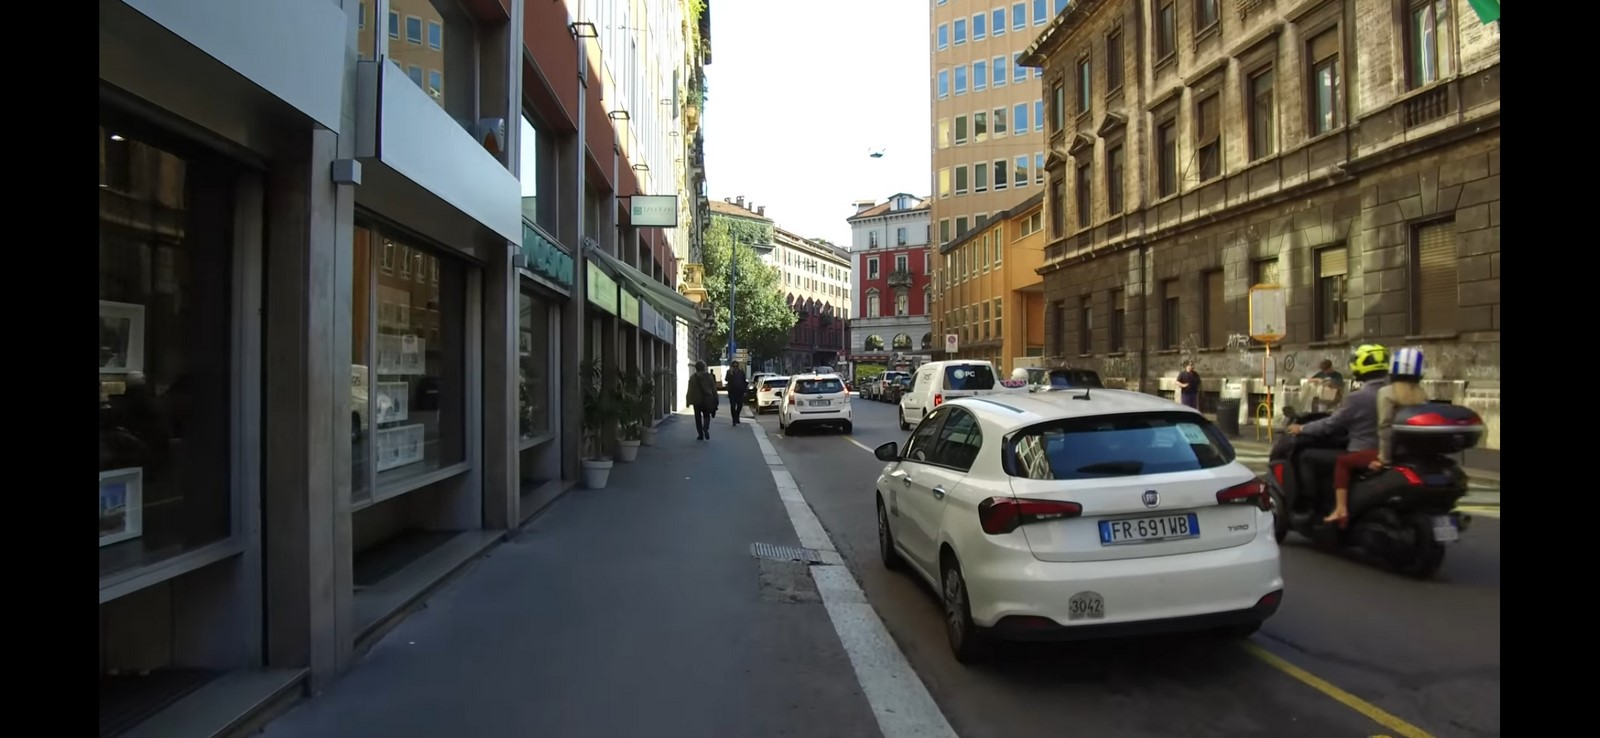 Architecture of Cities: Milan: The economic heart of Italy sheet13